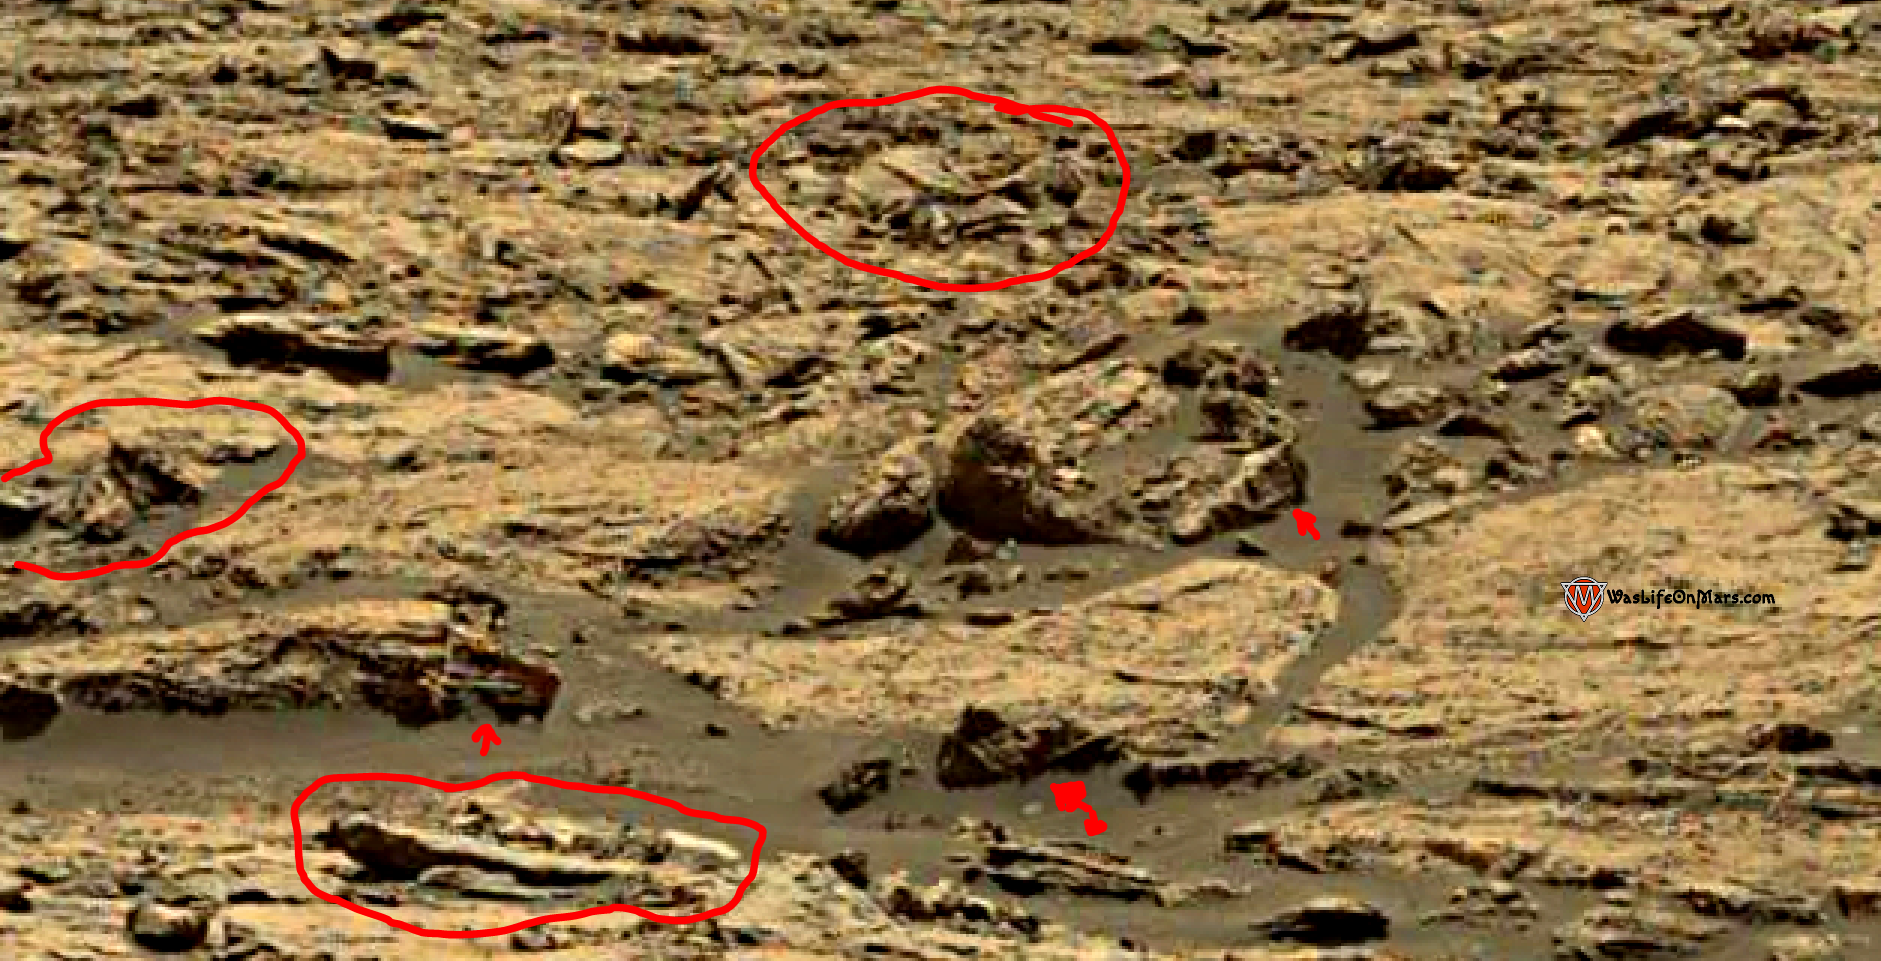 mars sol 1428 anomaly artifacts 3a was life on mars